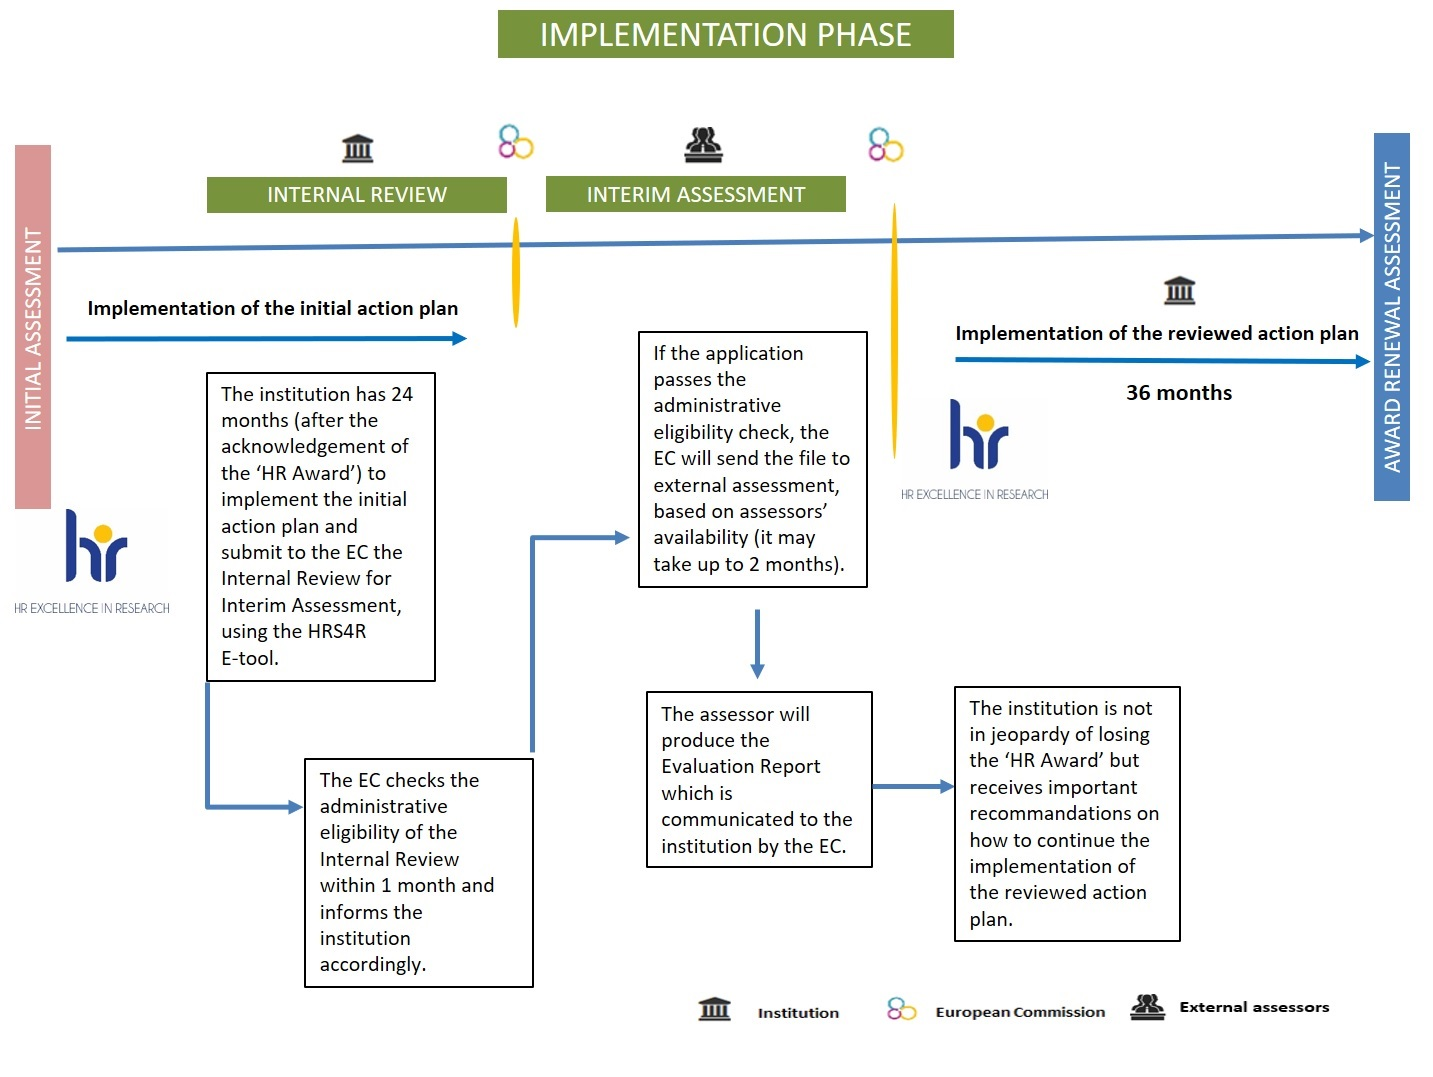 Implementation phase Flowchart